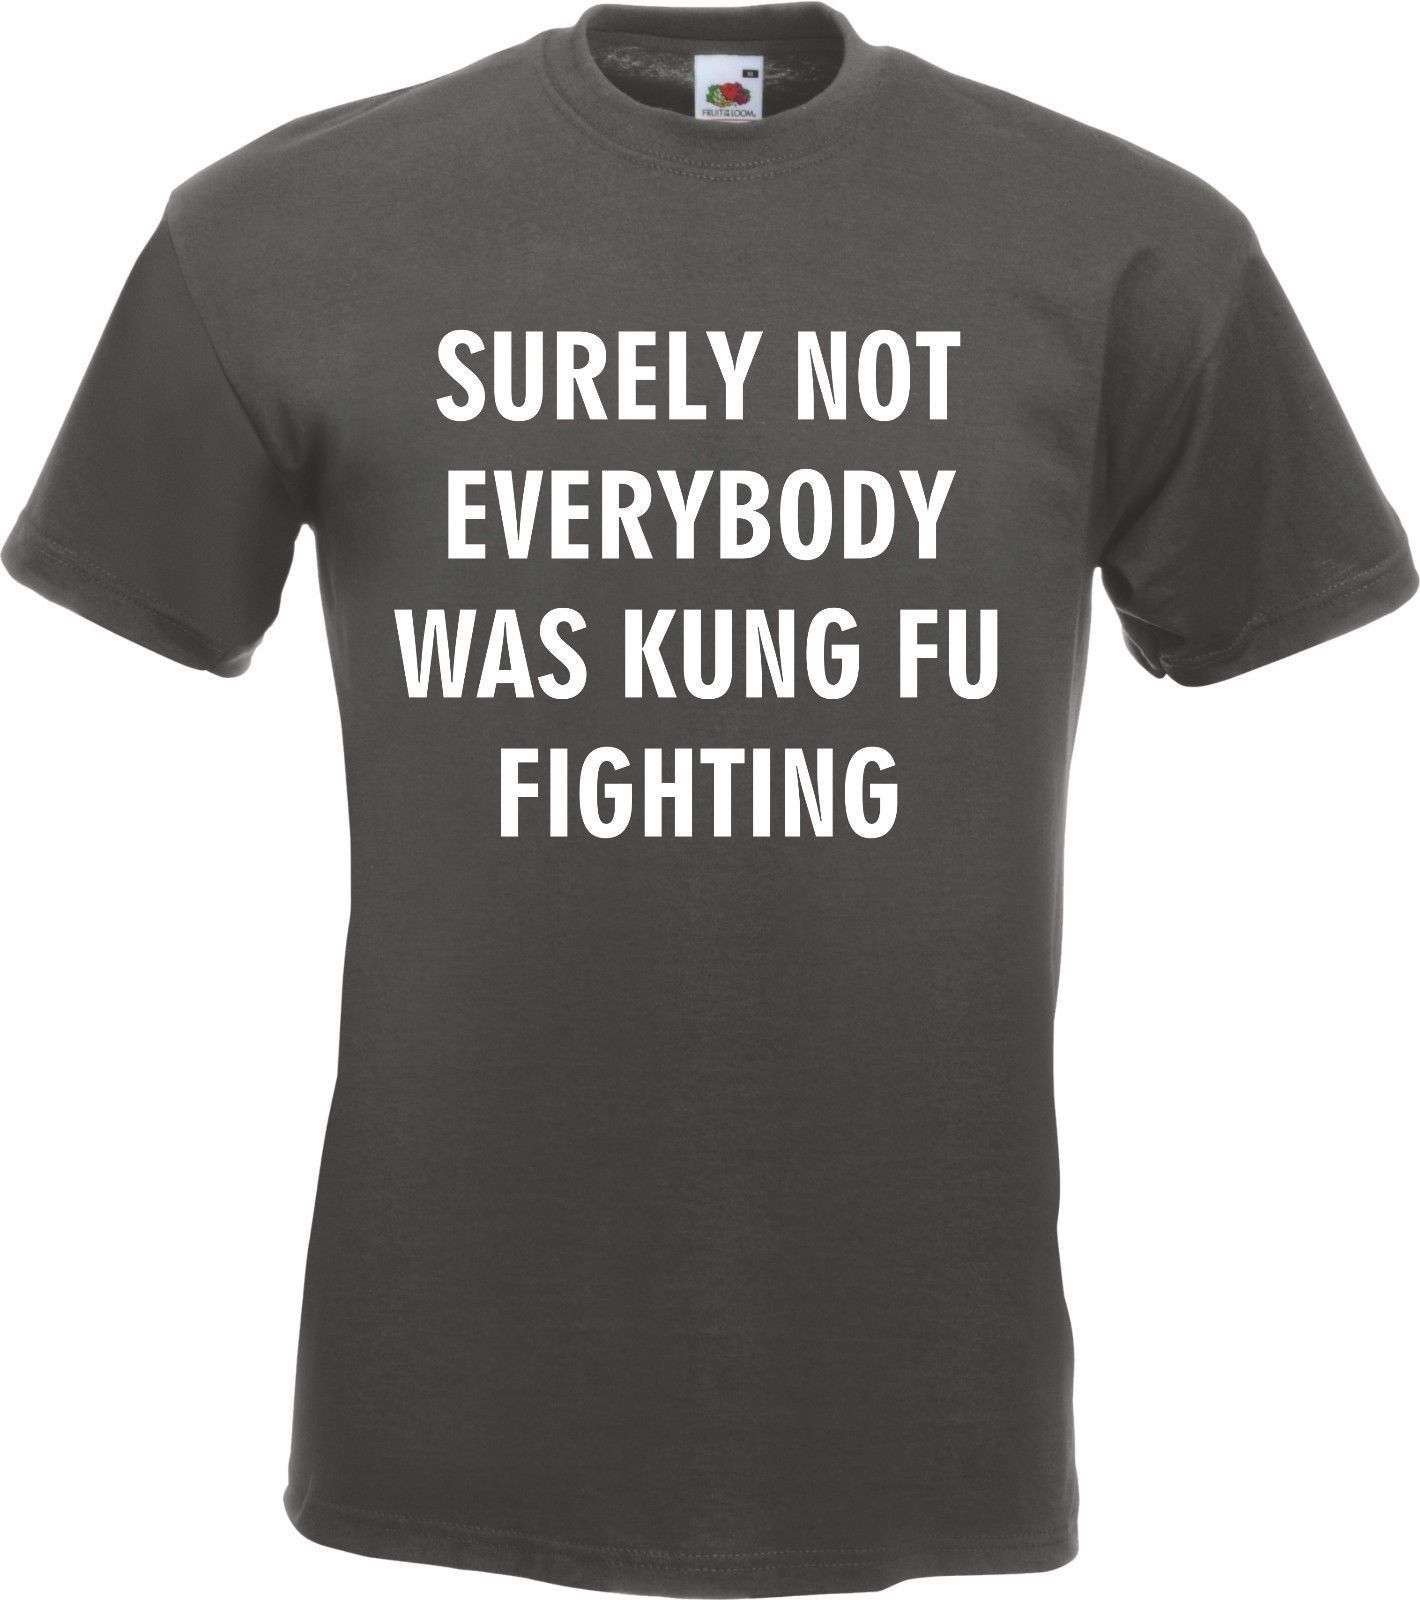 Surely Not Everybody Was Kung Fu Fighting T-Shirt Top Tee Dance Song Joke New T Shirts Funny Tops Tee New Unisex Funny Tops image